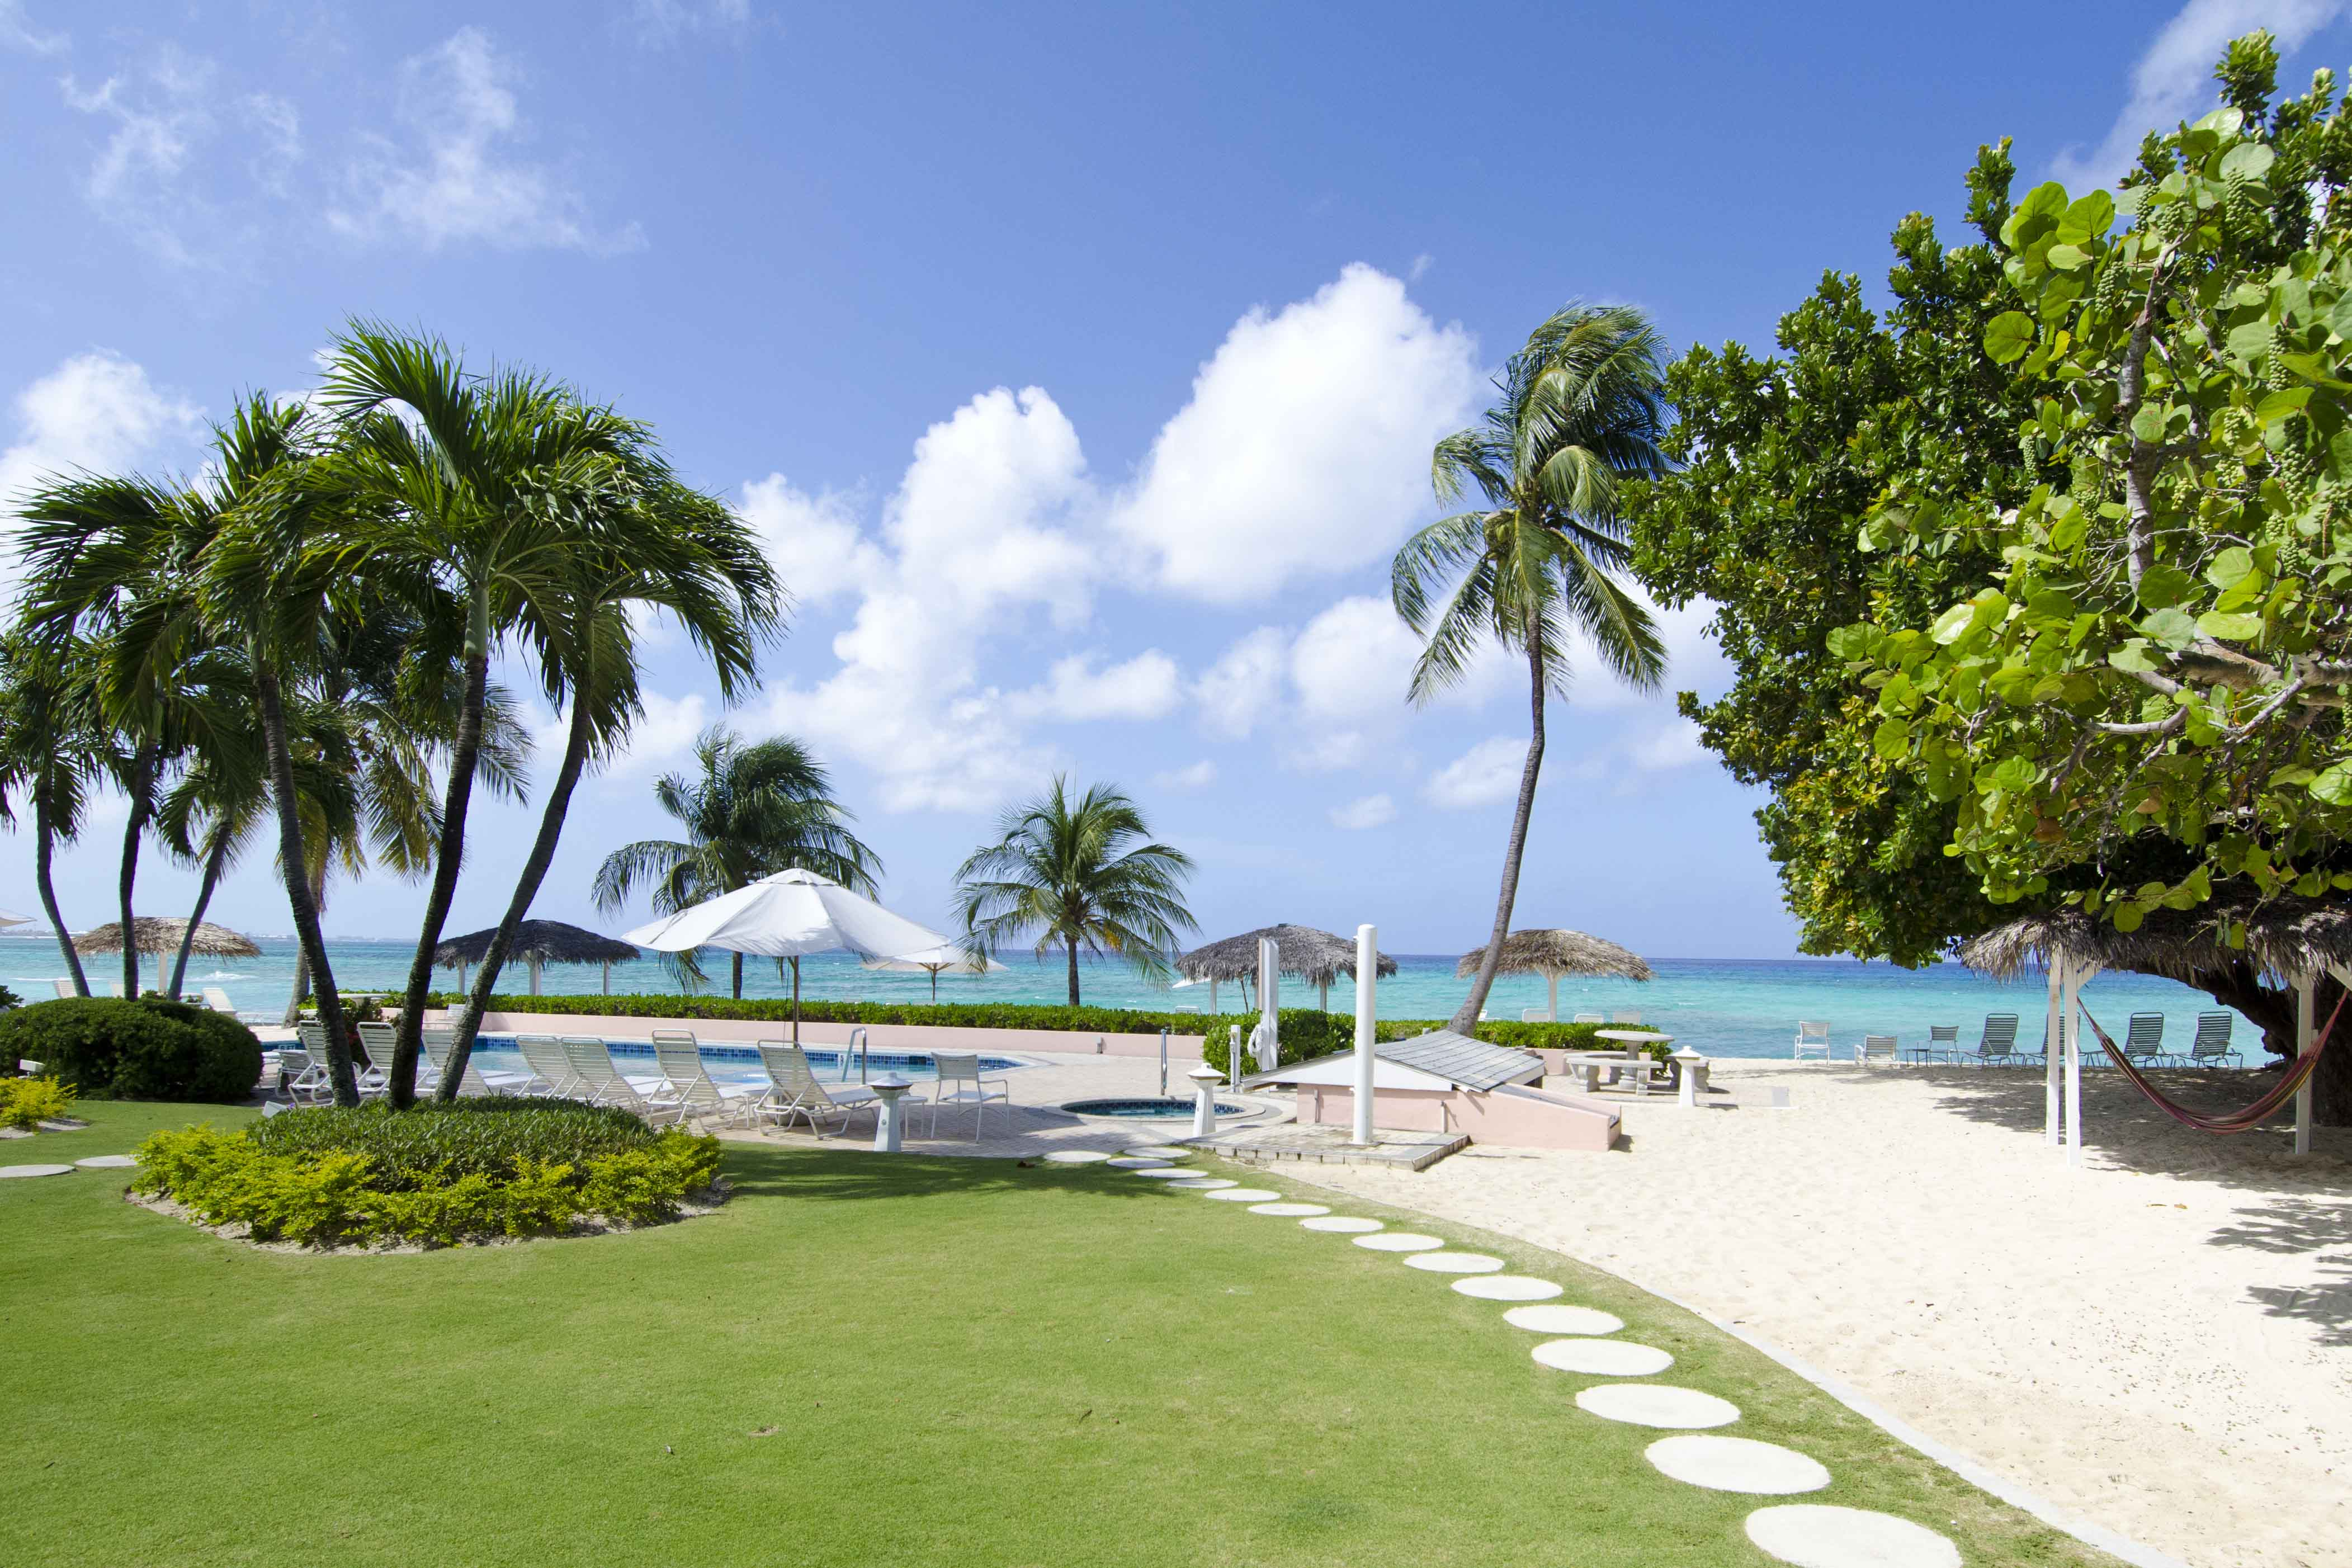 Cayman Islands Apartment Vacation Rentals Seven Mile Beach Grand     A 21 unit oceanfront condo hotel directly on Seven Mile Beach Grand Cayman